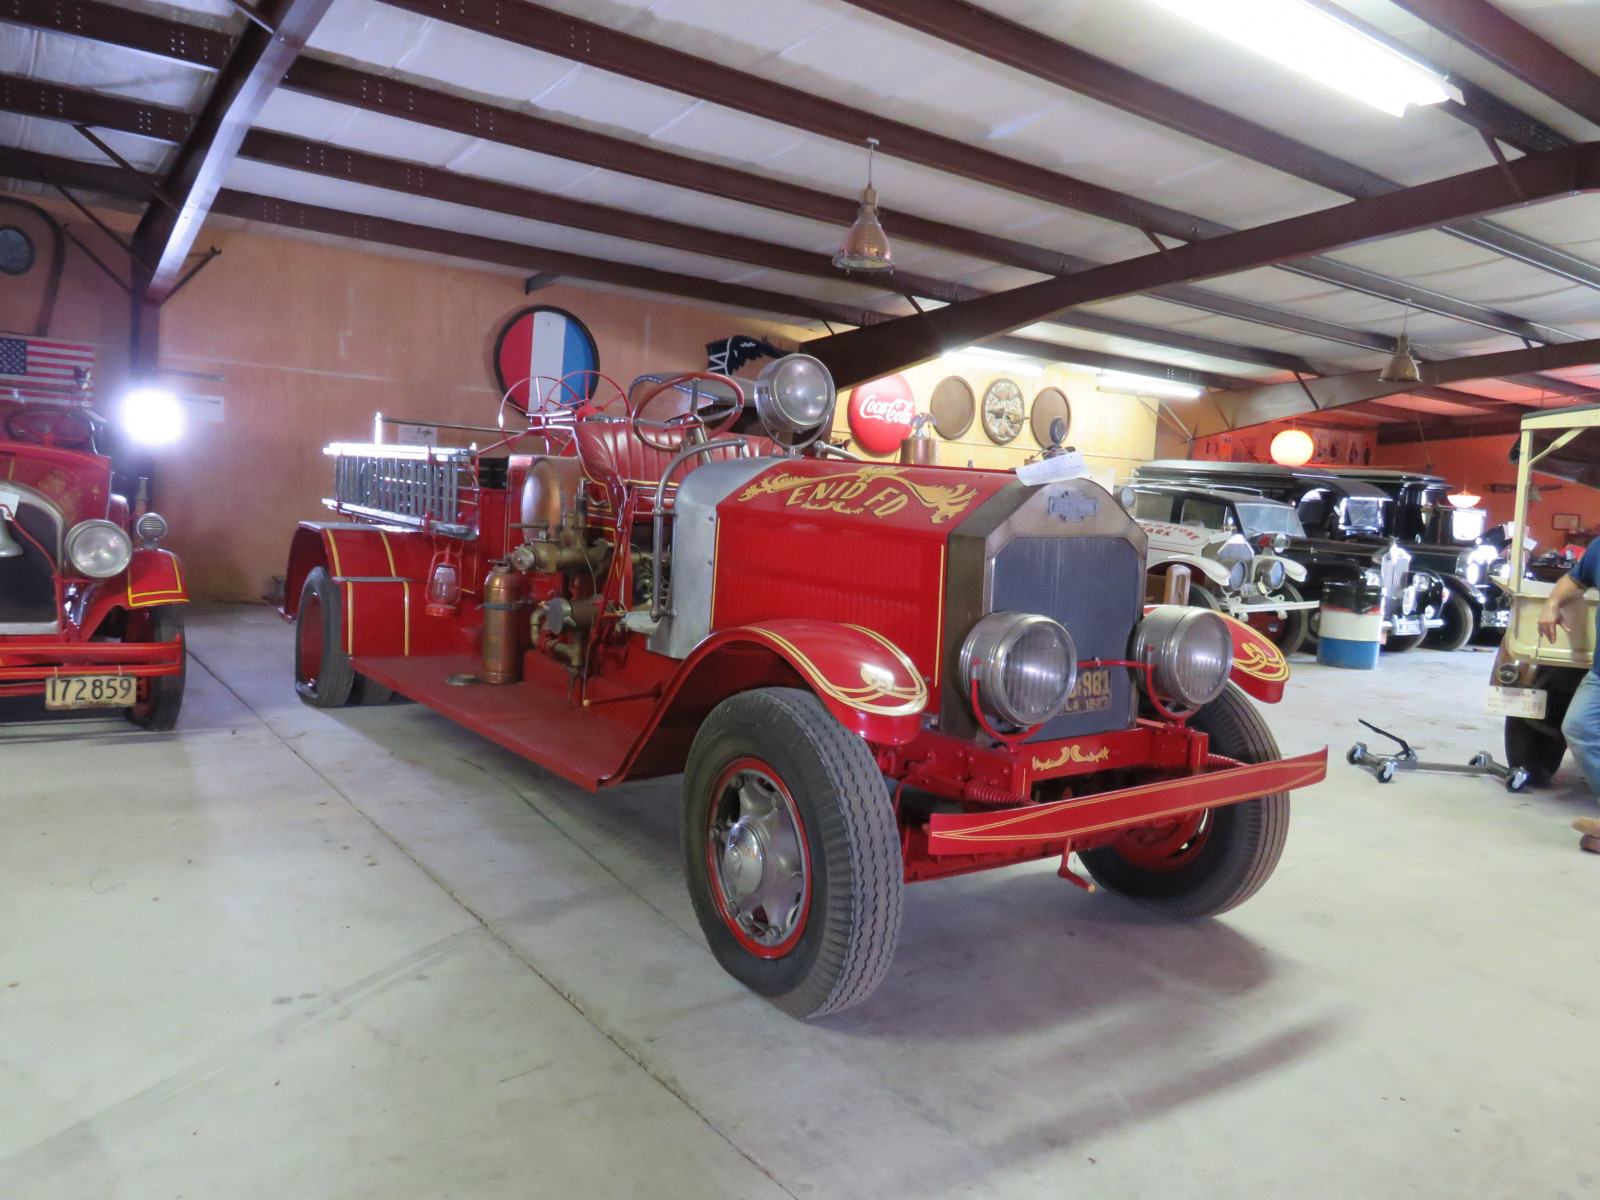 1927 American LaFrance Fire Truck 6107 - Image 1